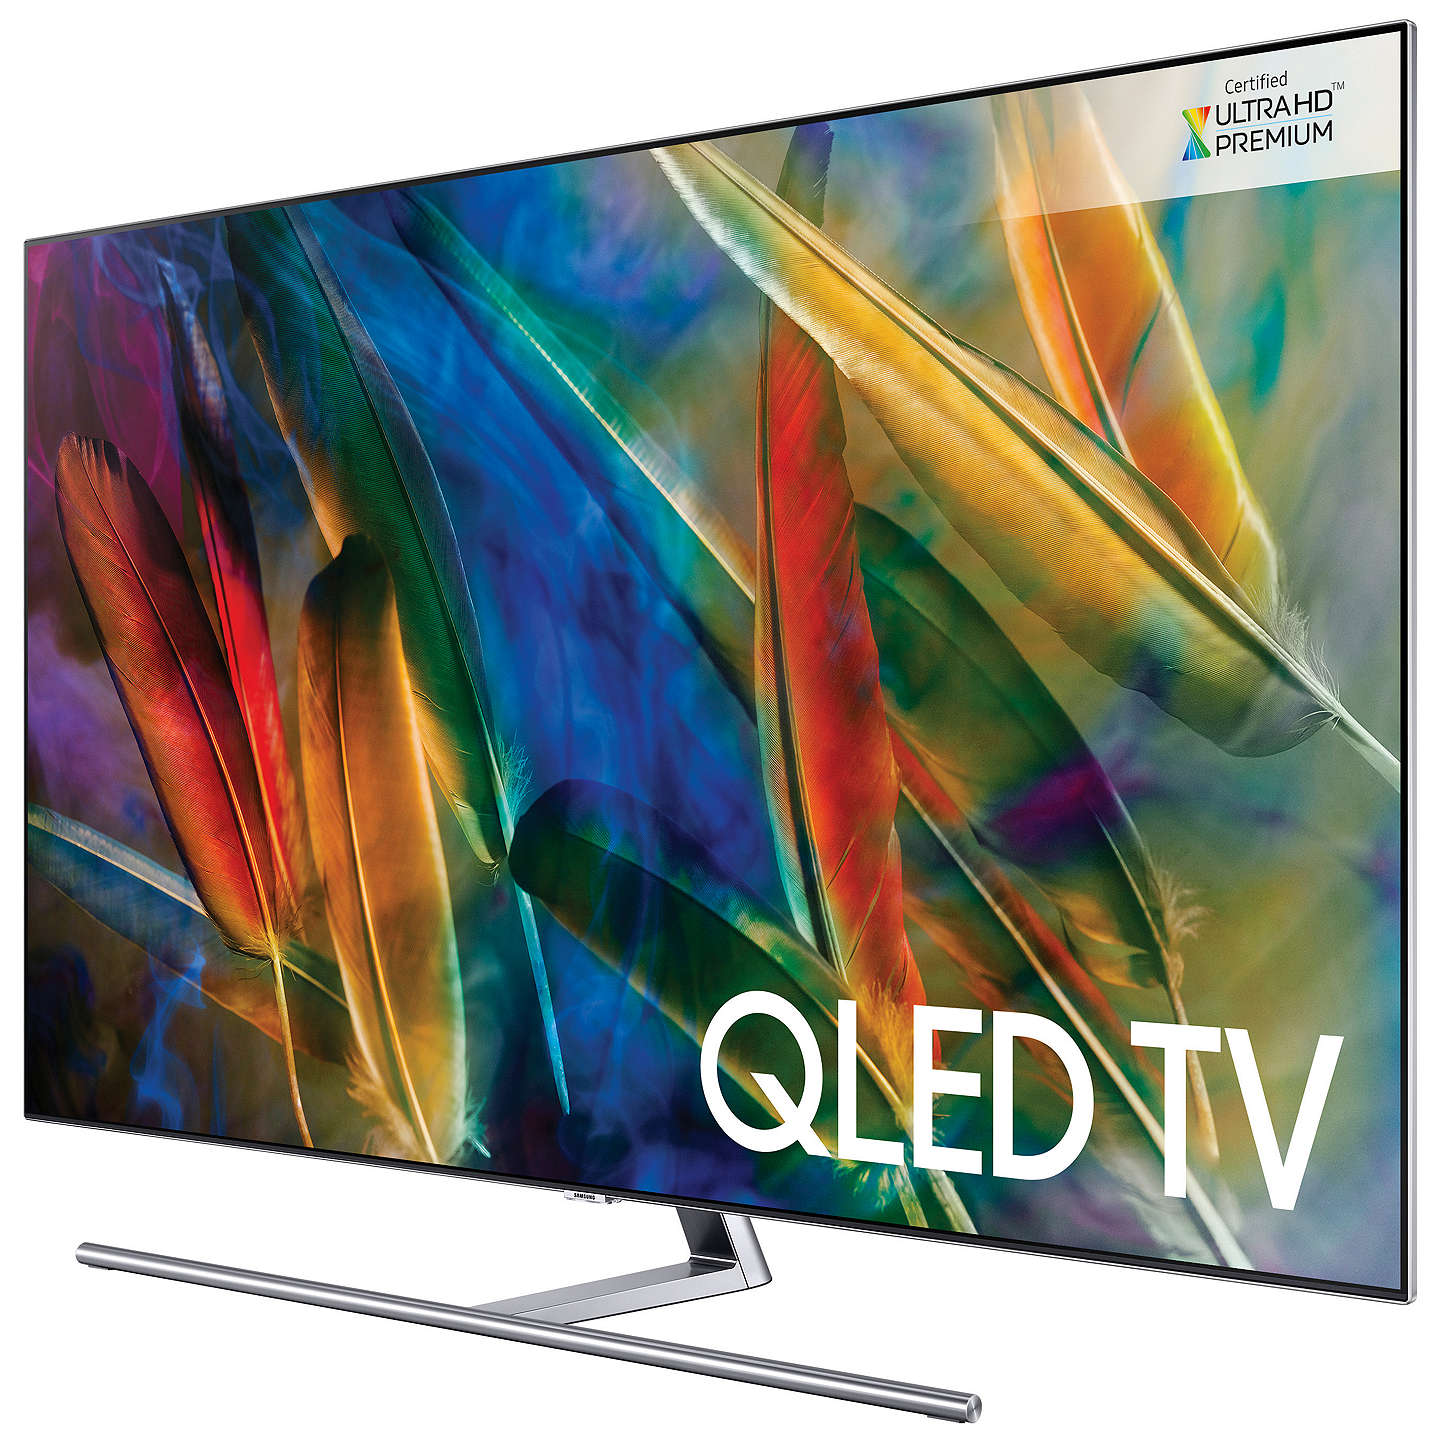 "BuySamsung QE55Q8F QLED HDR 1500 4K Ultra HD Smart TV, 55"" with TVPlus/Freesat HD & 360 Design, Ultra HD Premium Certified, Silver Online at johnlewis.com"